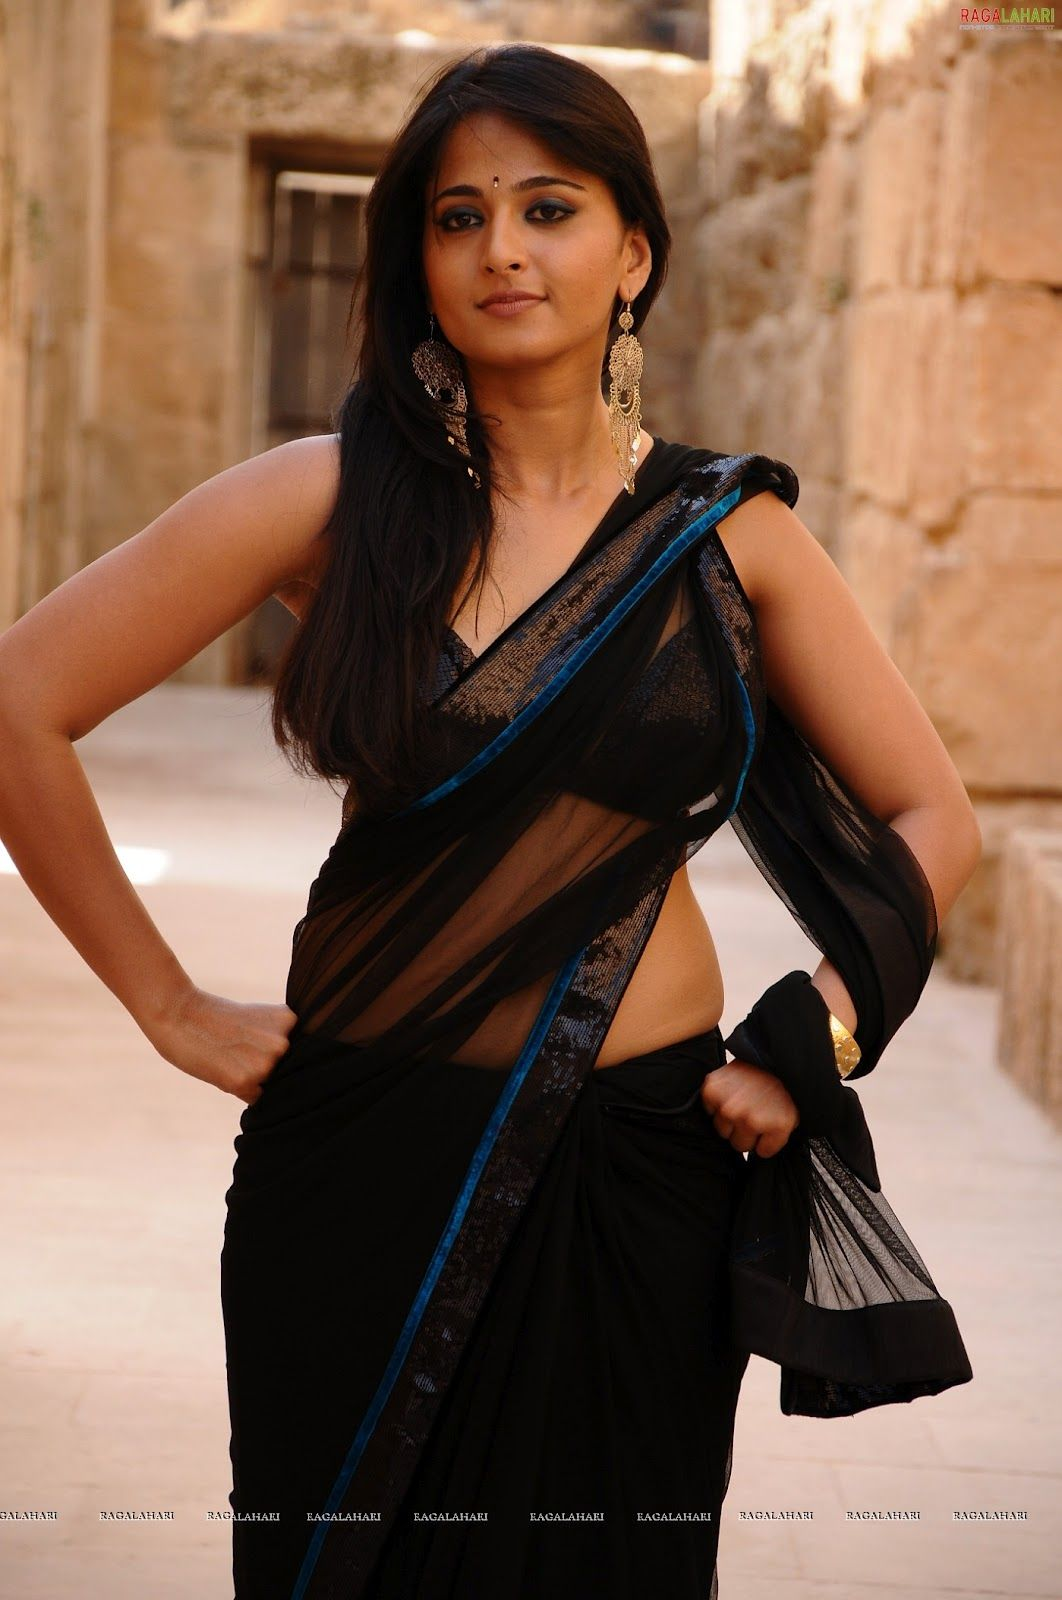 Anushka shetty in sleeveless saree and in bikini for the movie anushka shetty in sleeveless saree and in bikini for the movie ragada with nagarjuna she is very hot altavistaventures Gallery